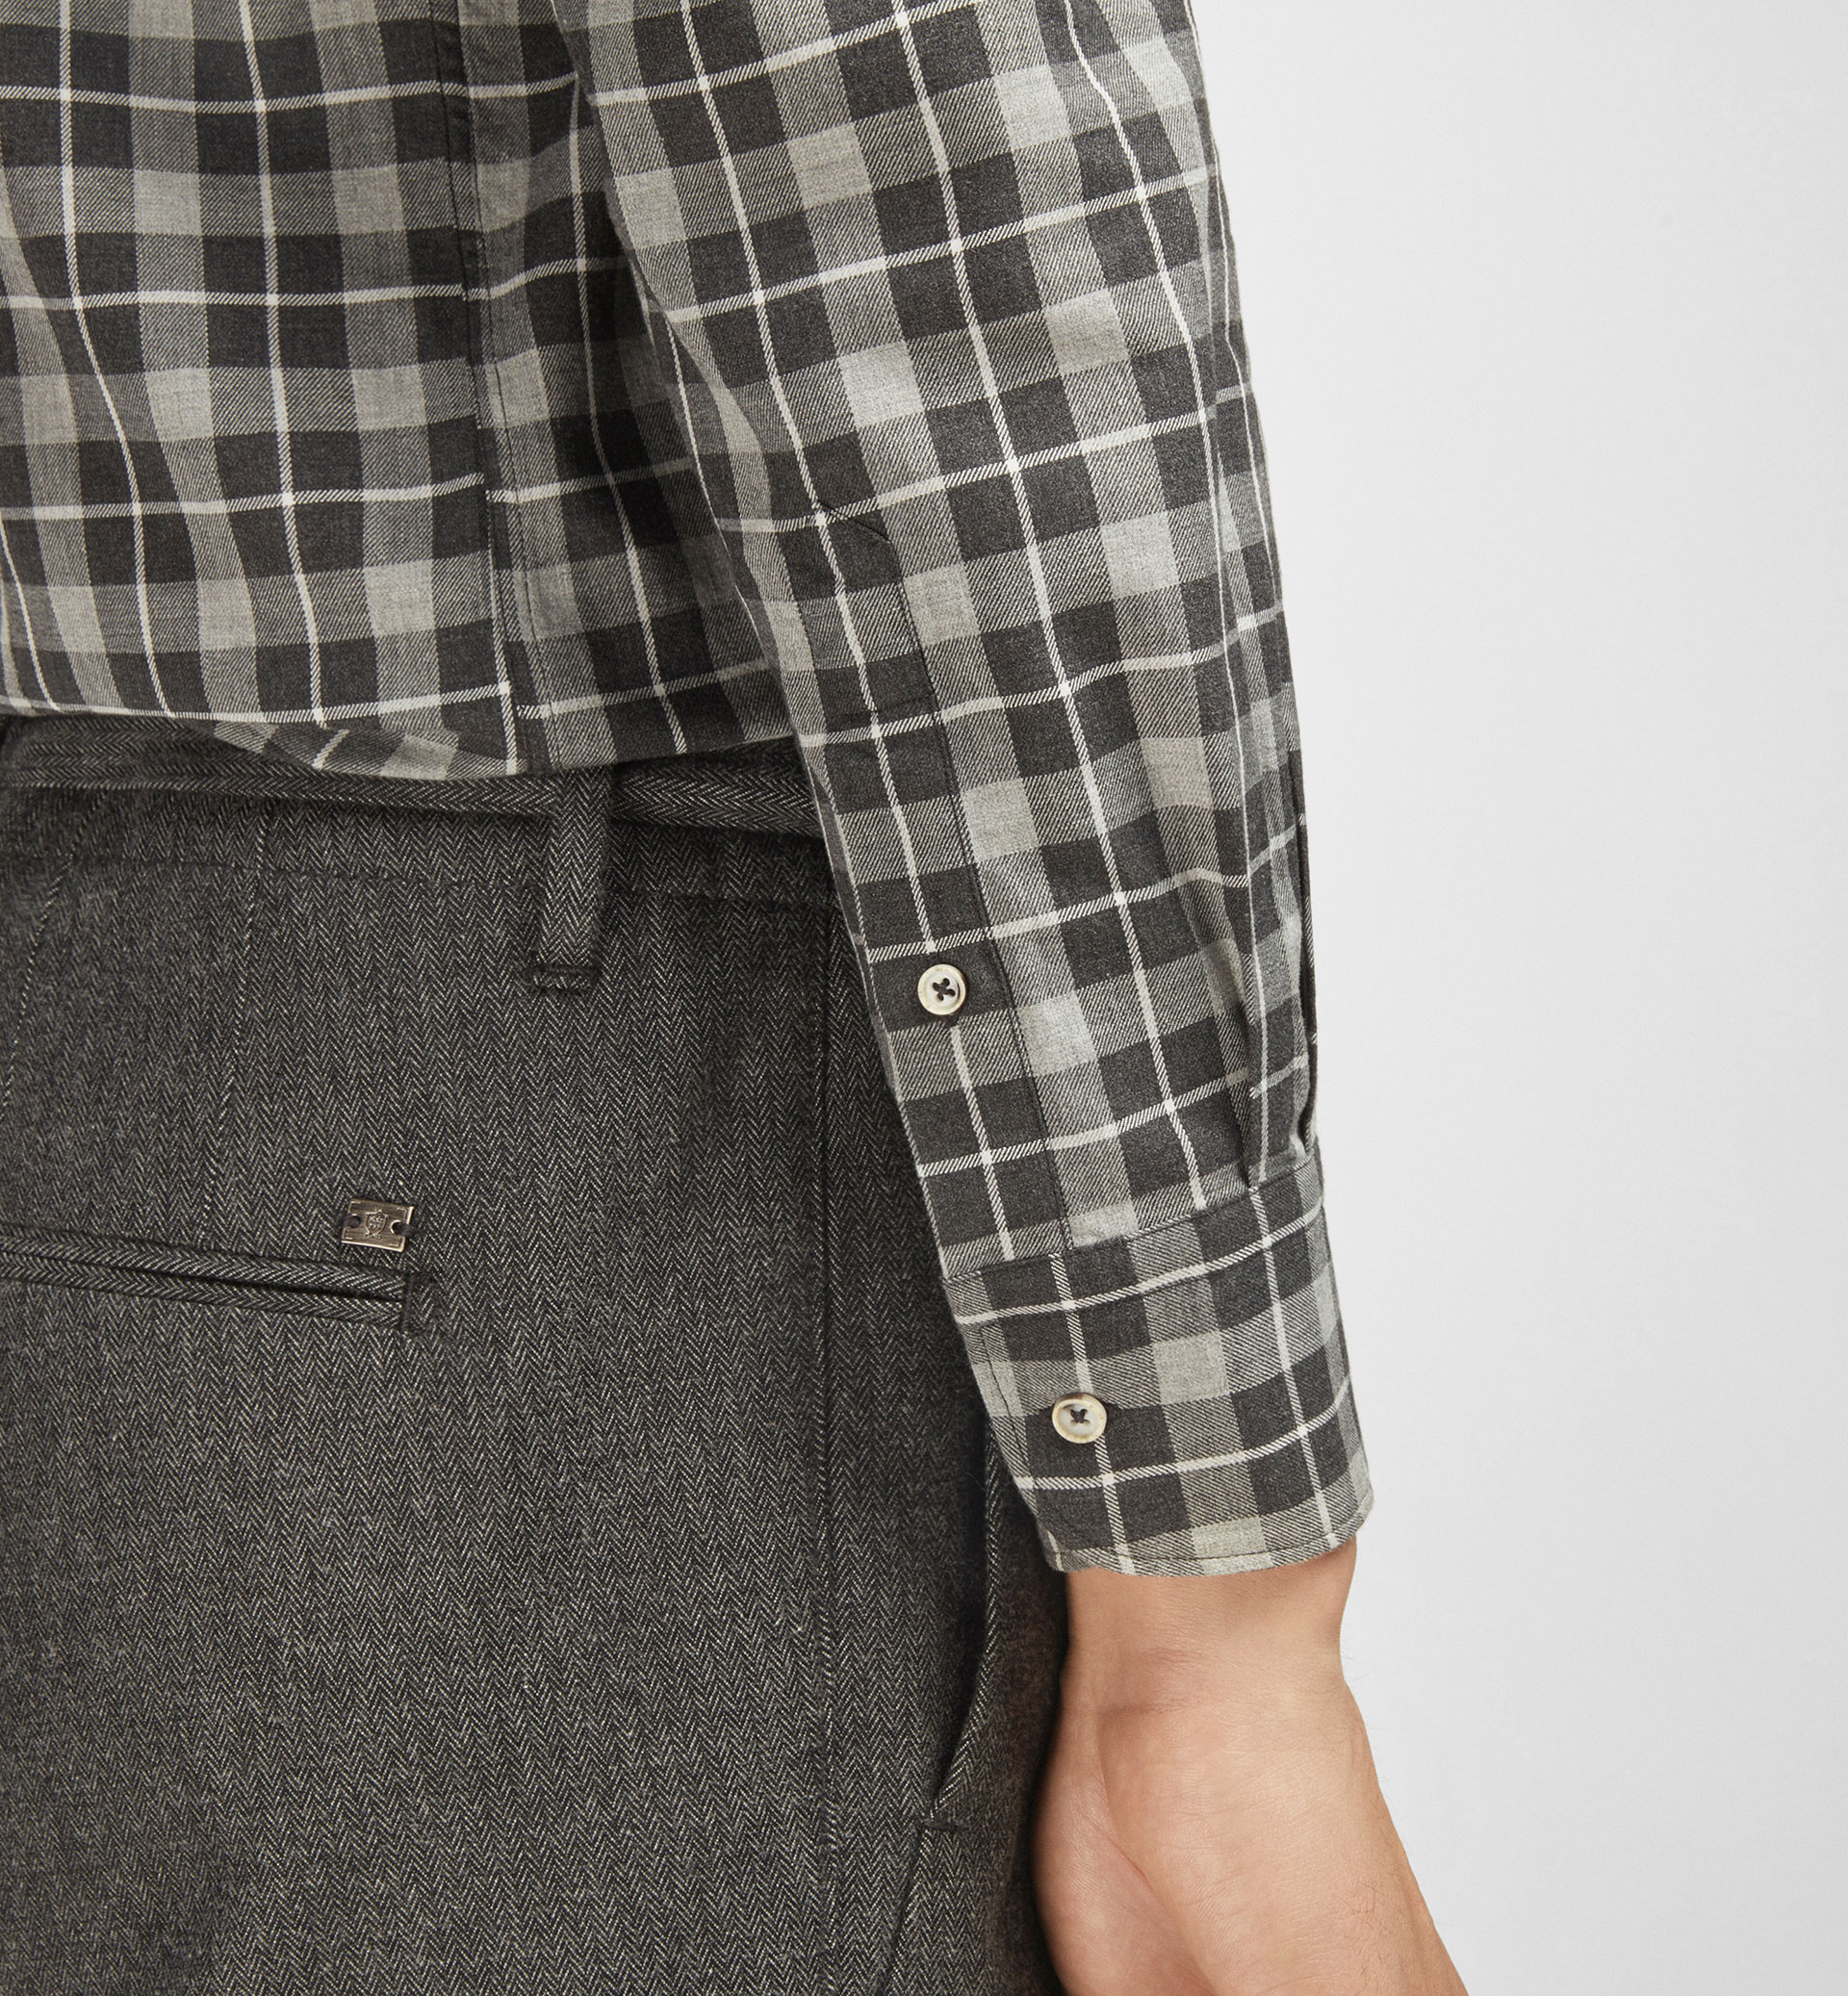 SLIM GREY SHIRT WITH LARGE CHECKS